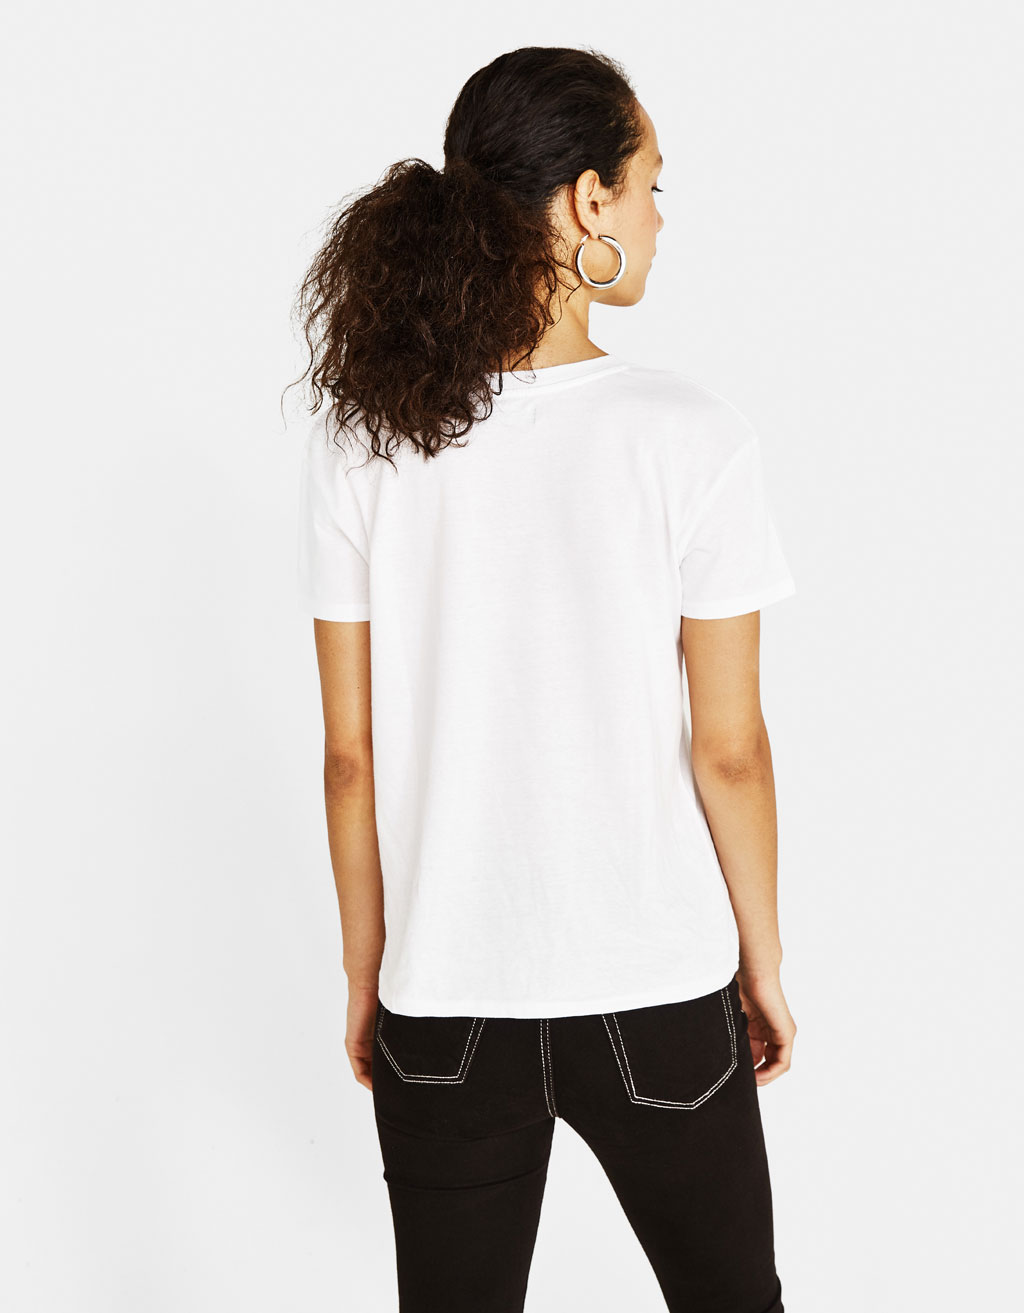 e8fb2b1b7fd5c8 T-shirt with print - Push-up - Bershka Greece